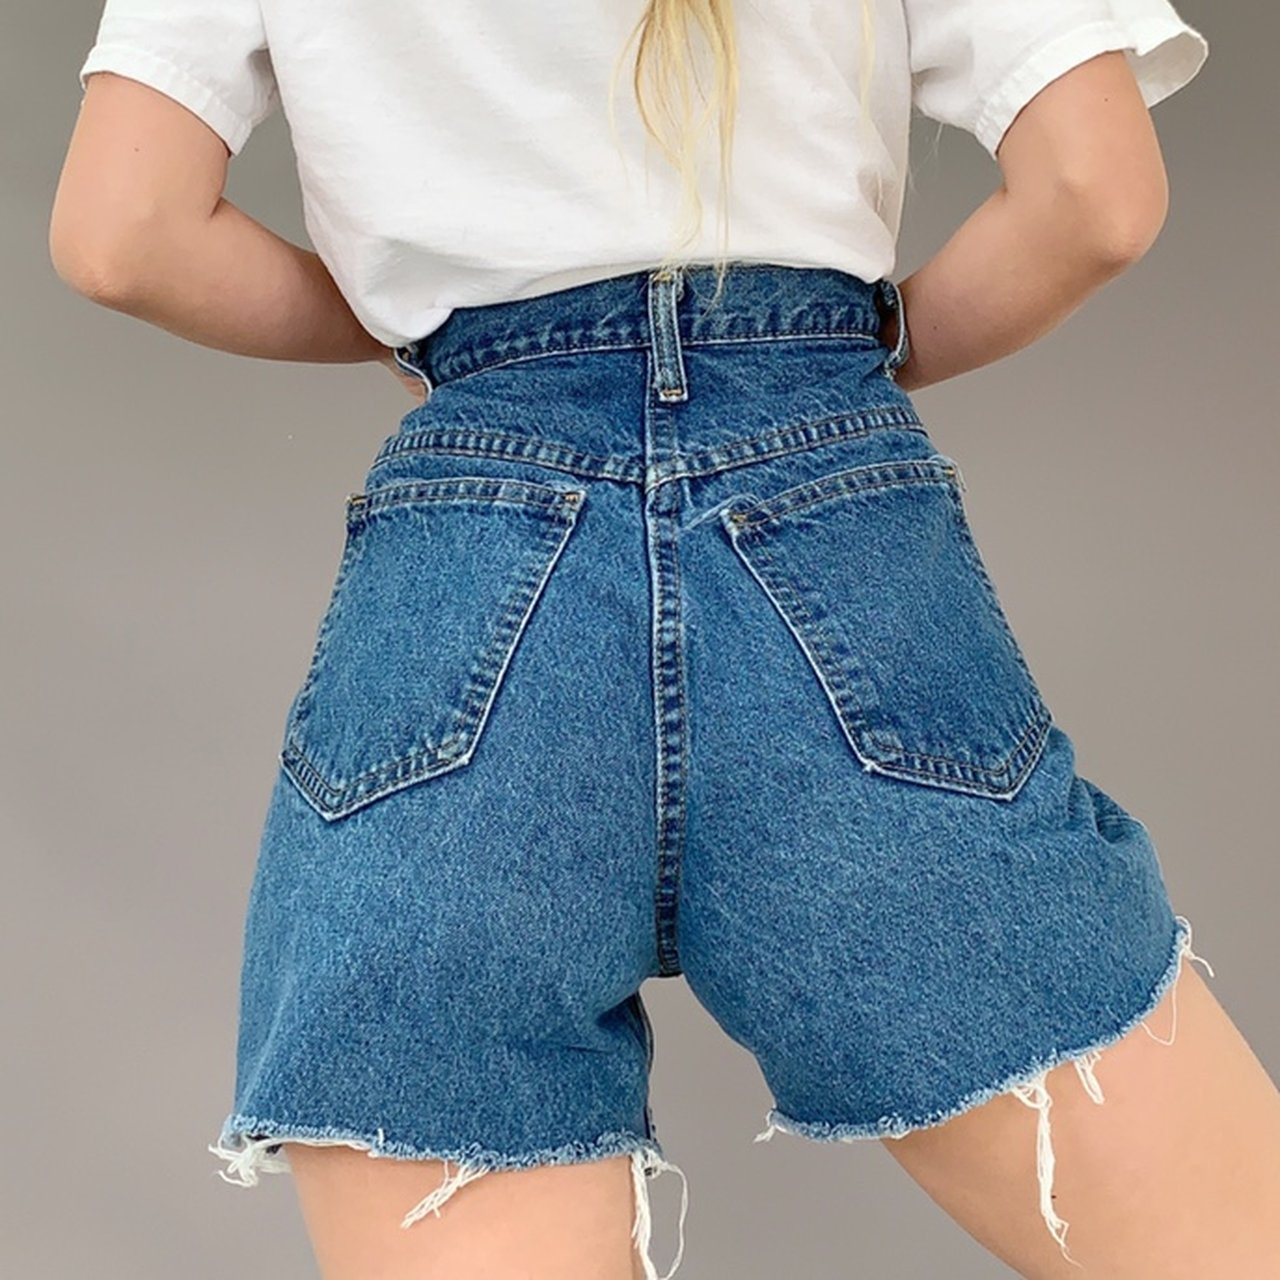 dcb167287a Vintage Made In The Usa Shorts Size 27 Zero Flaws High Waisted Fit! Medium  Wash